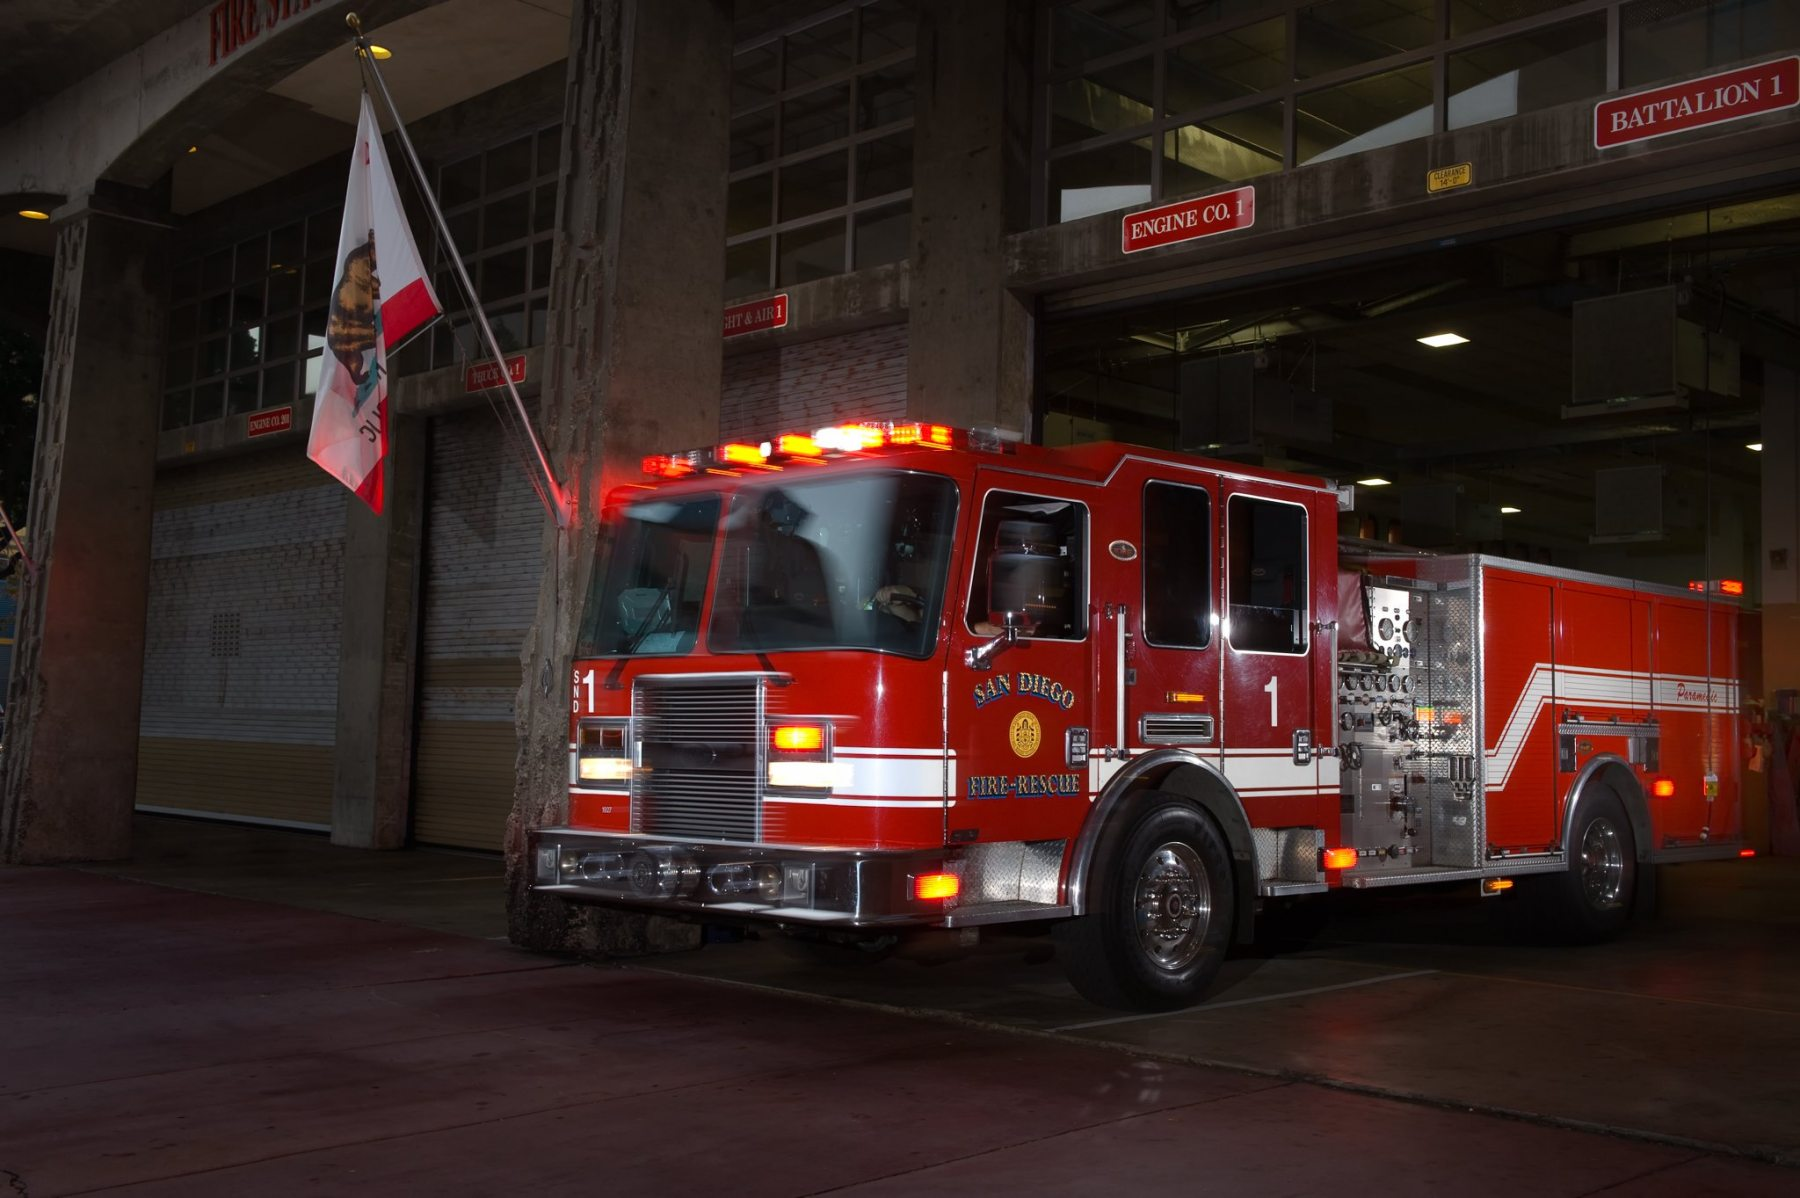 SDFD Engine 1 at Station 1